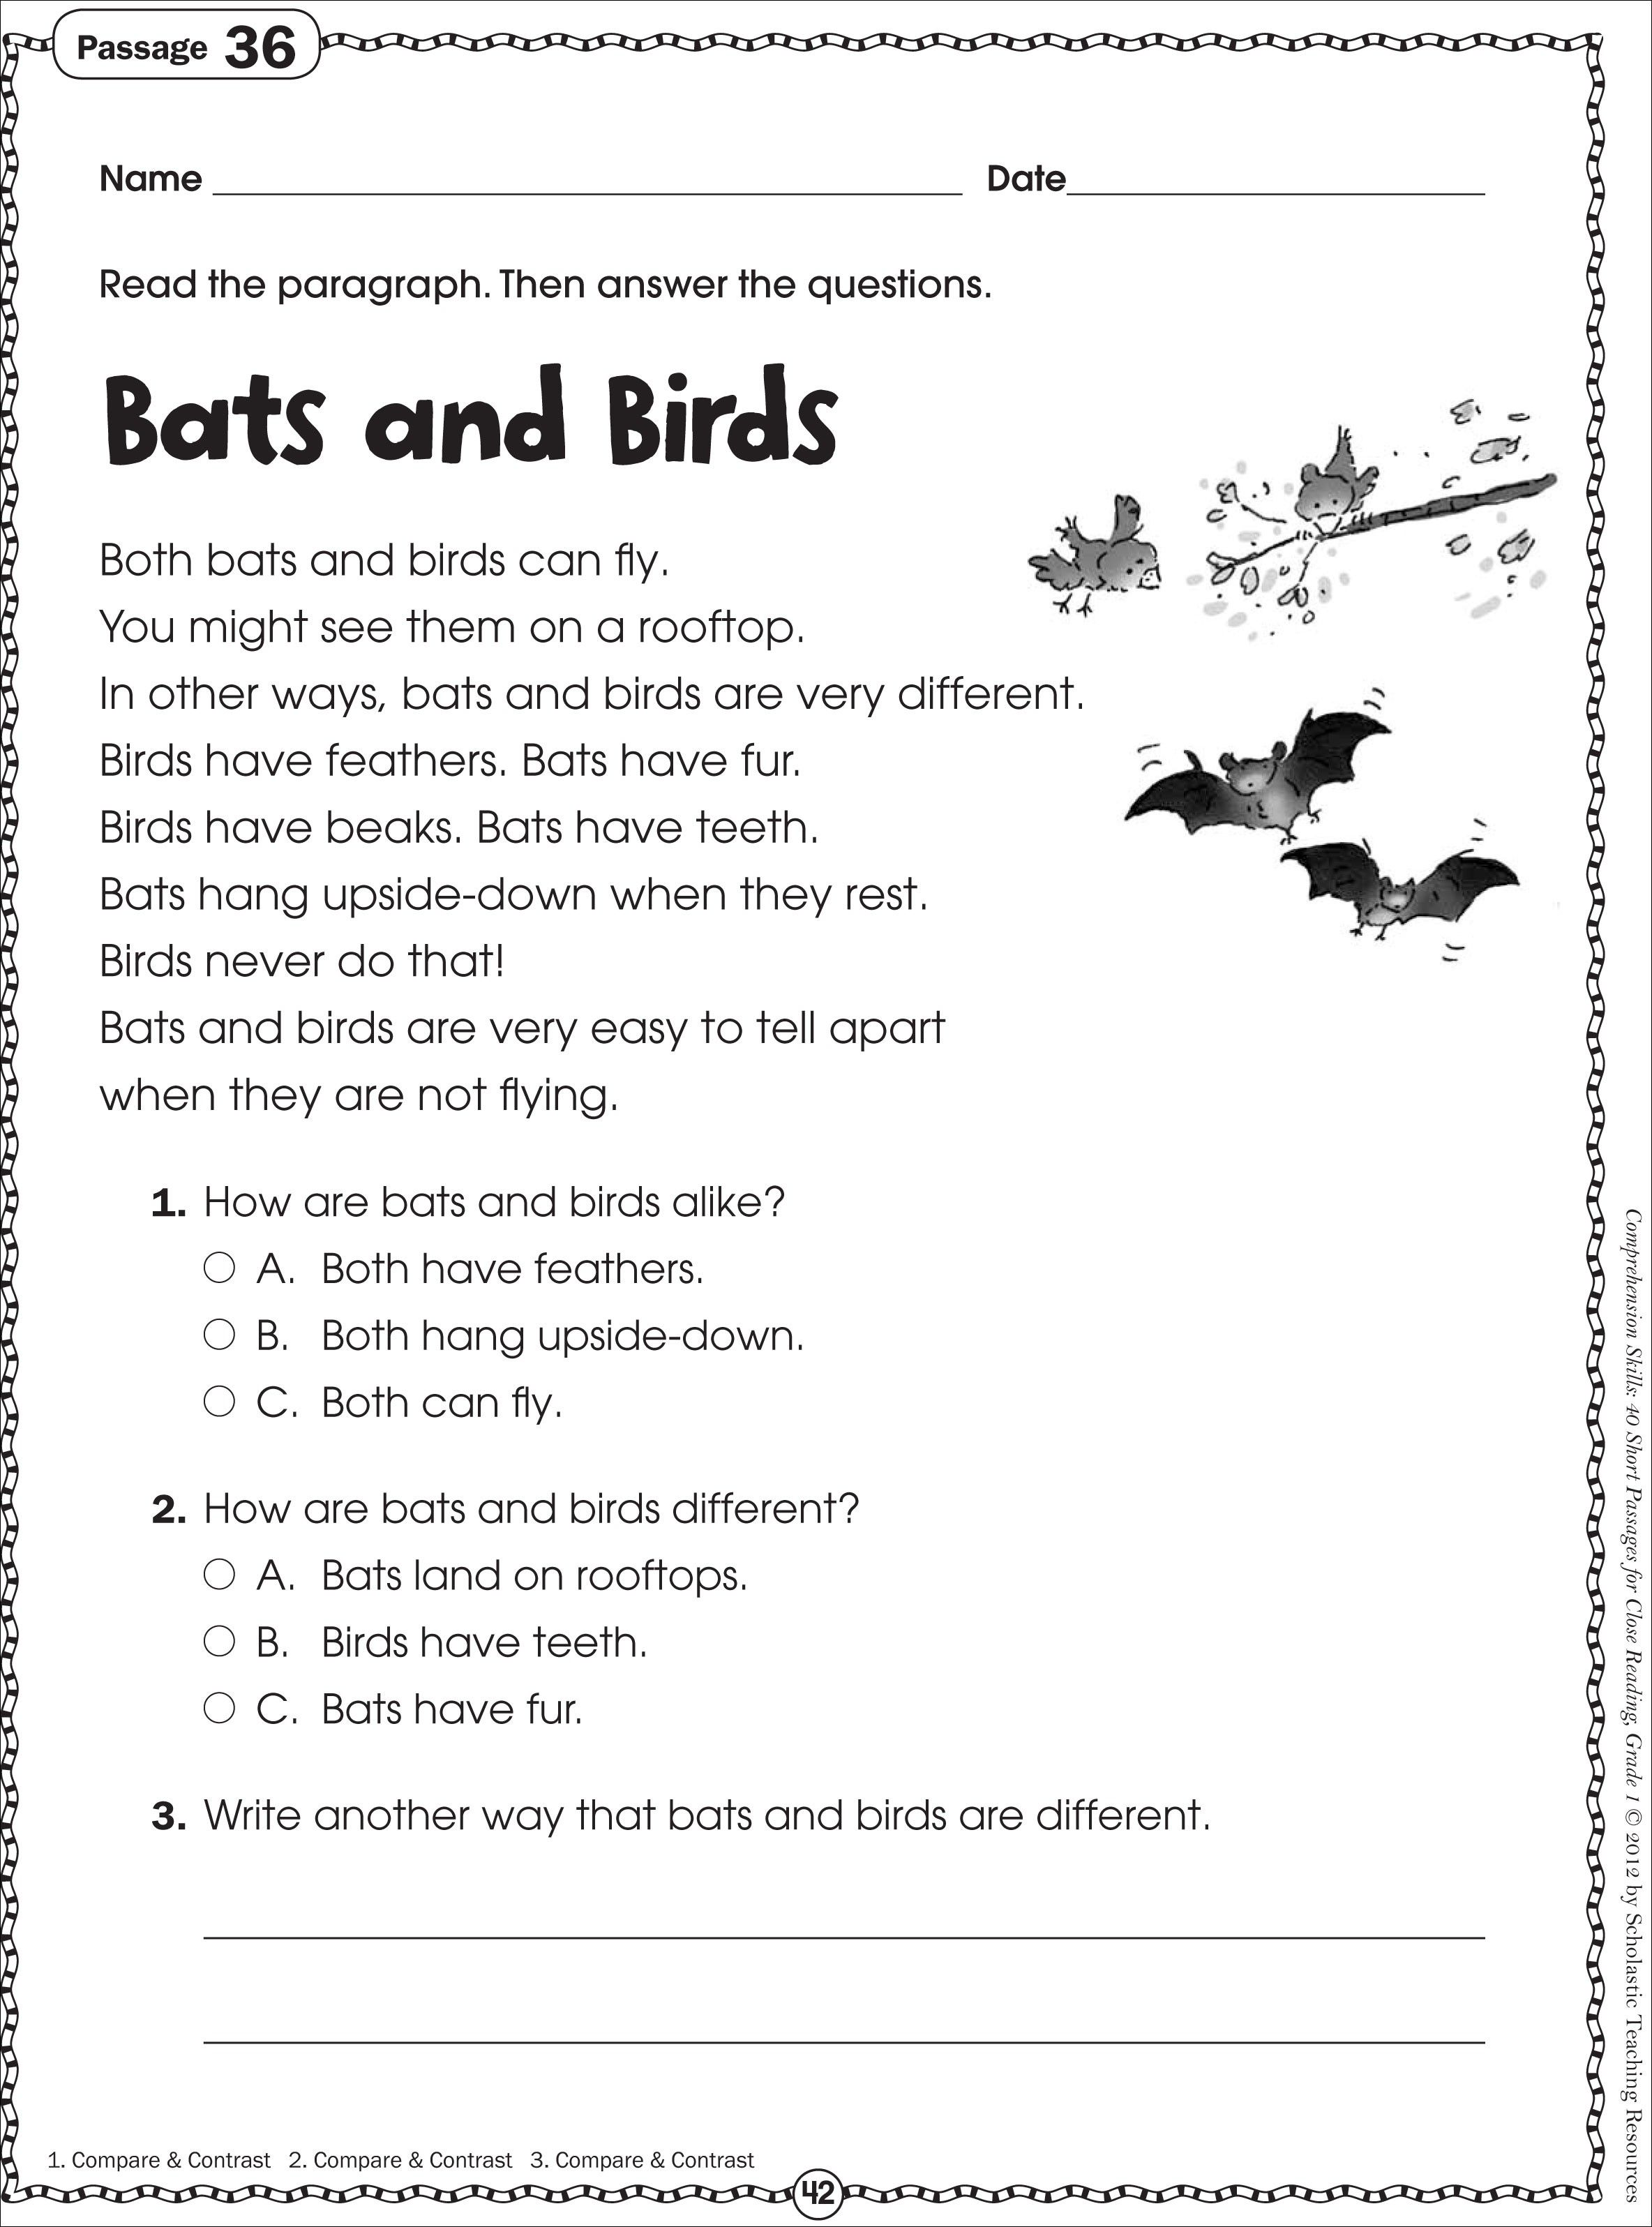 12 Best 3rd Grade Reading Worksheets With Questions Images